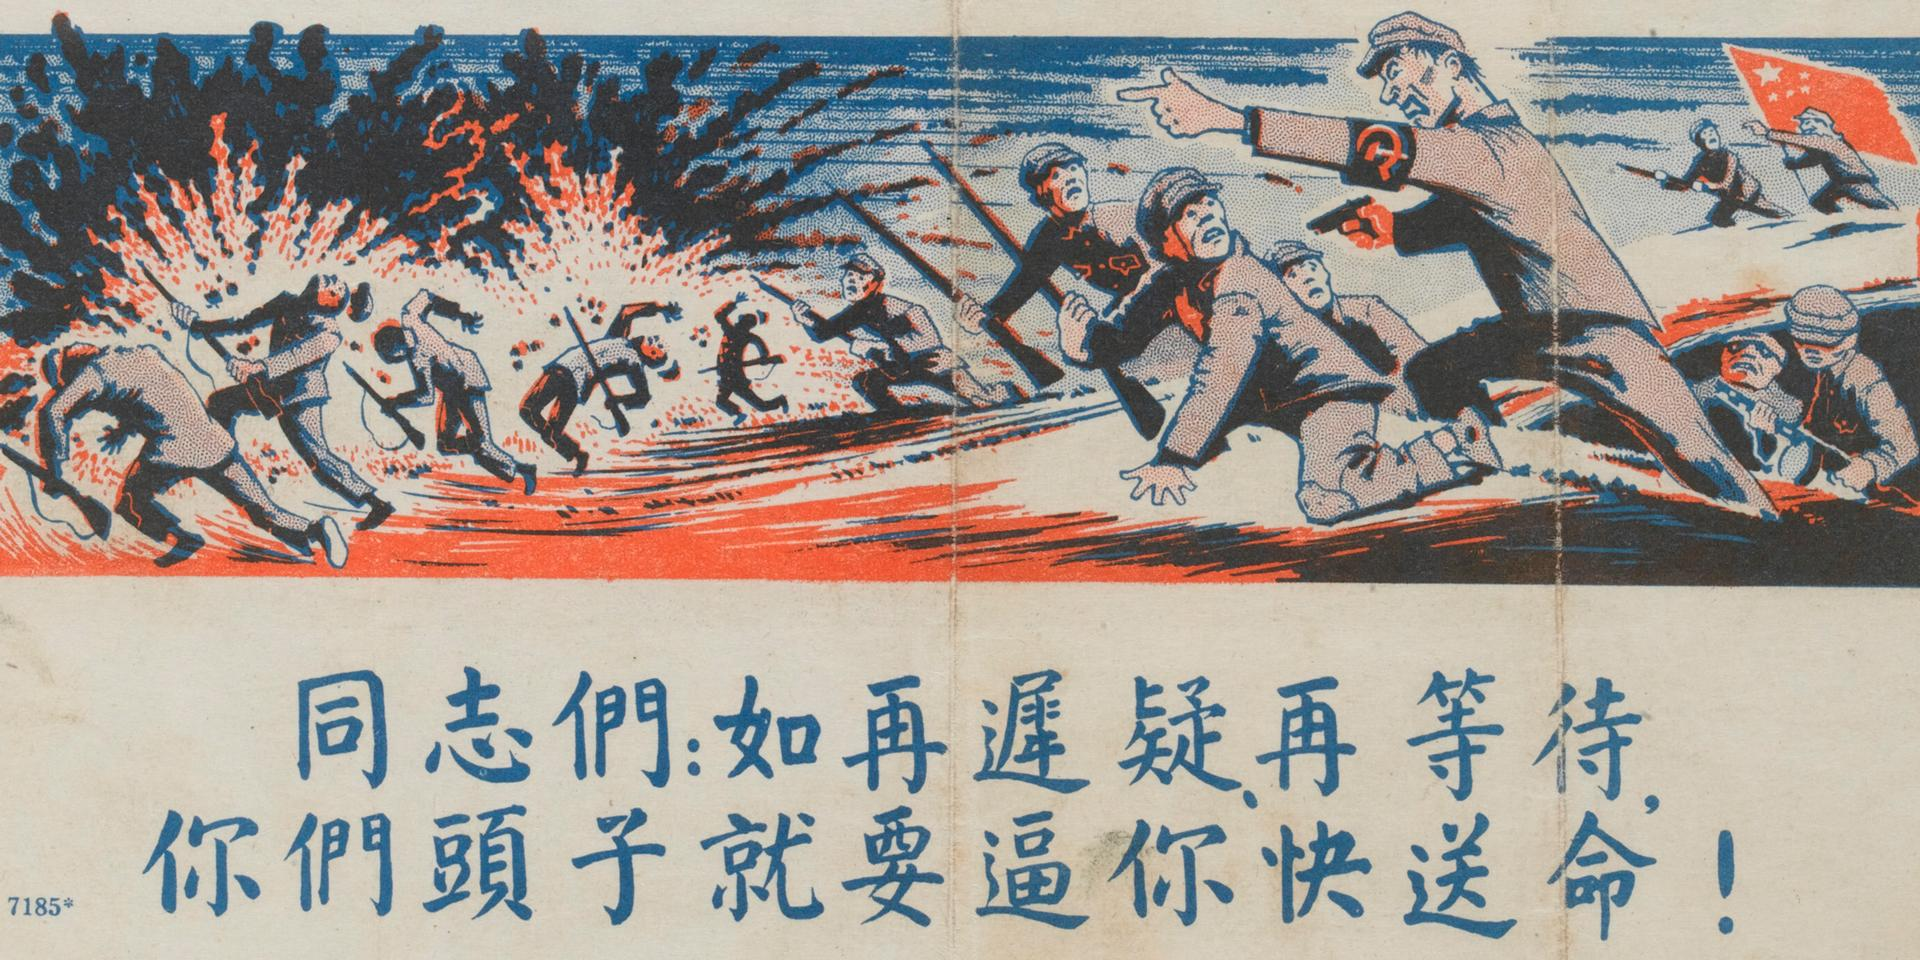 Propaganda leaflet, distributed to the Army of the Republic of Korea, encouraging them to surrender.